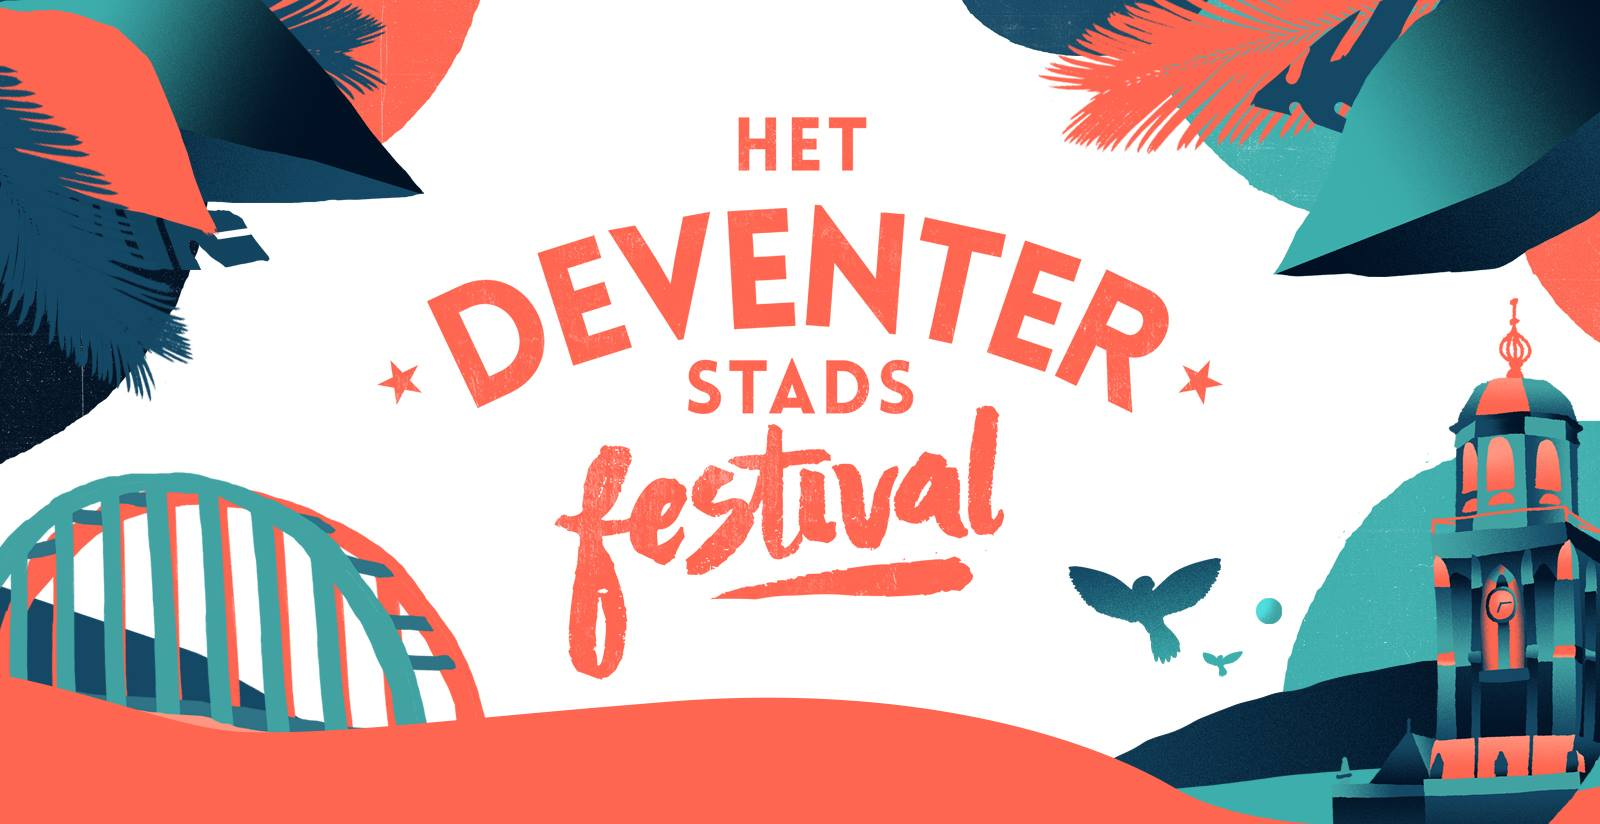 Header Deventer Stadsfestival 2018.jpg